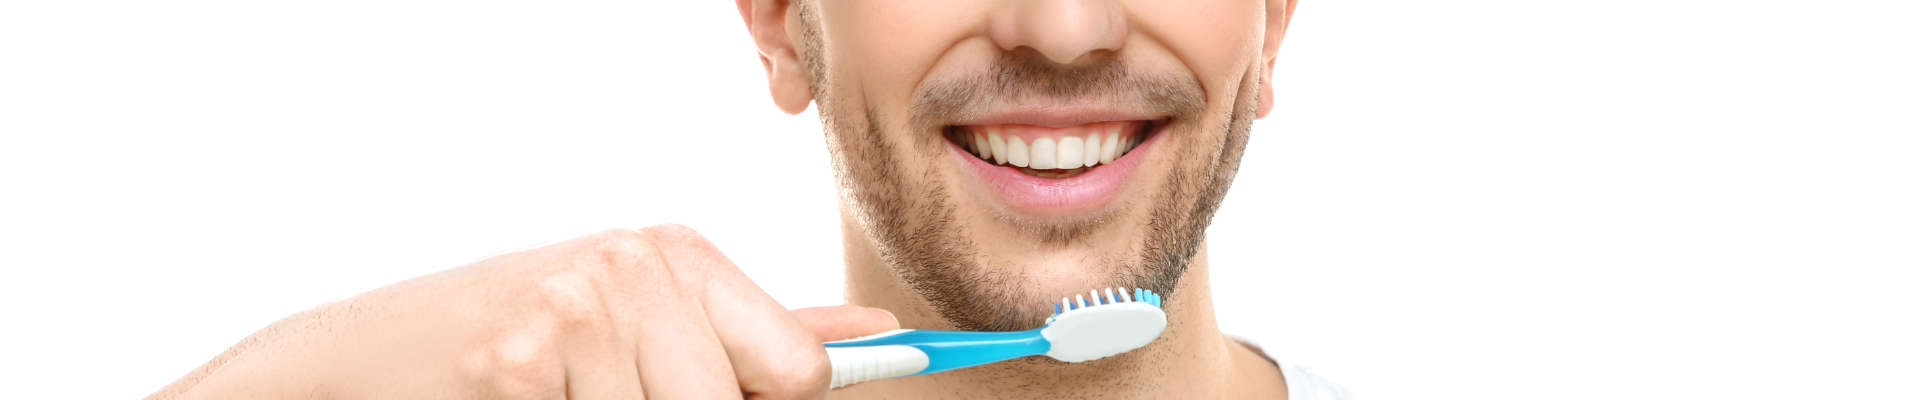 A young man is smiling. He wants to brush his teeth.